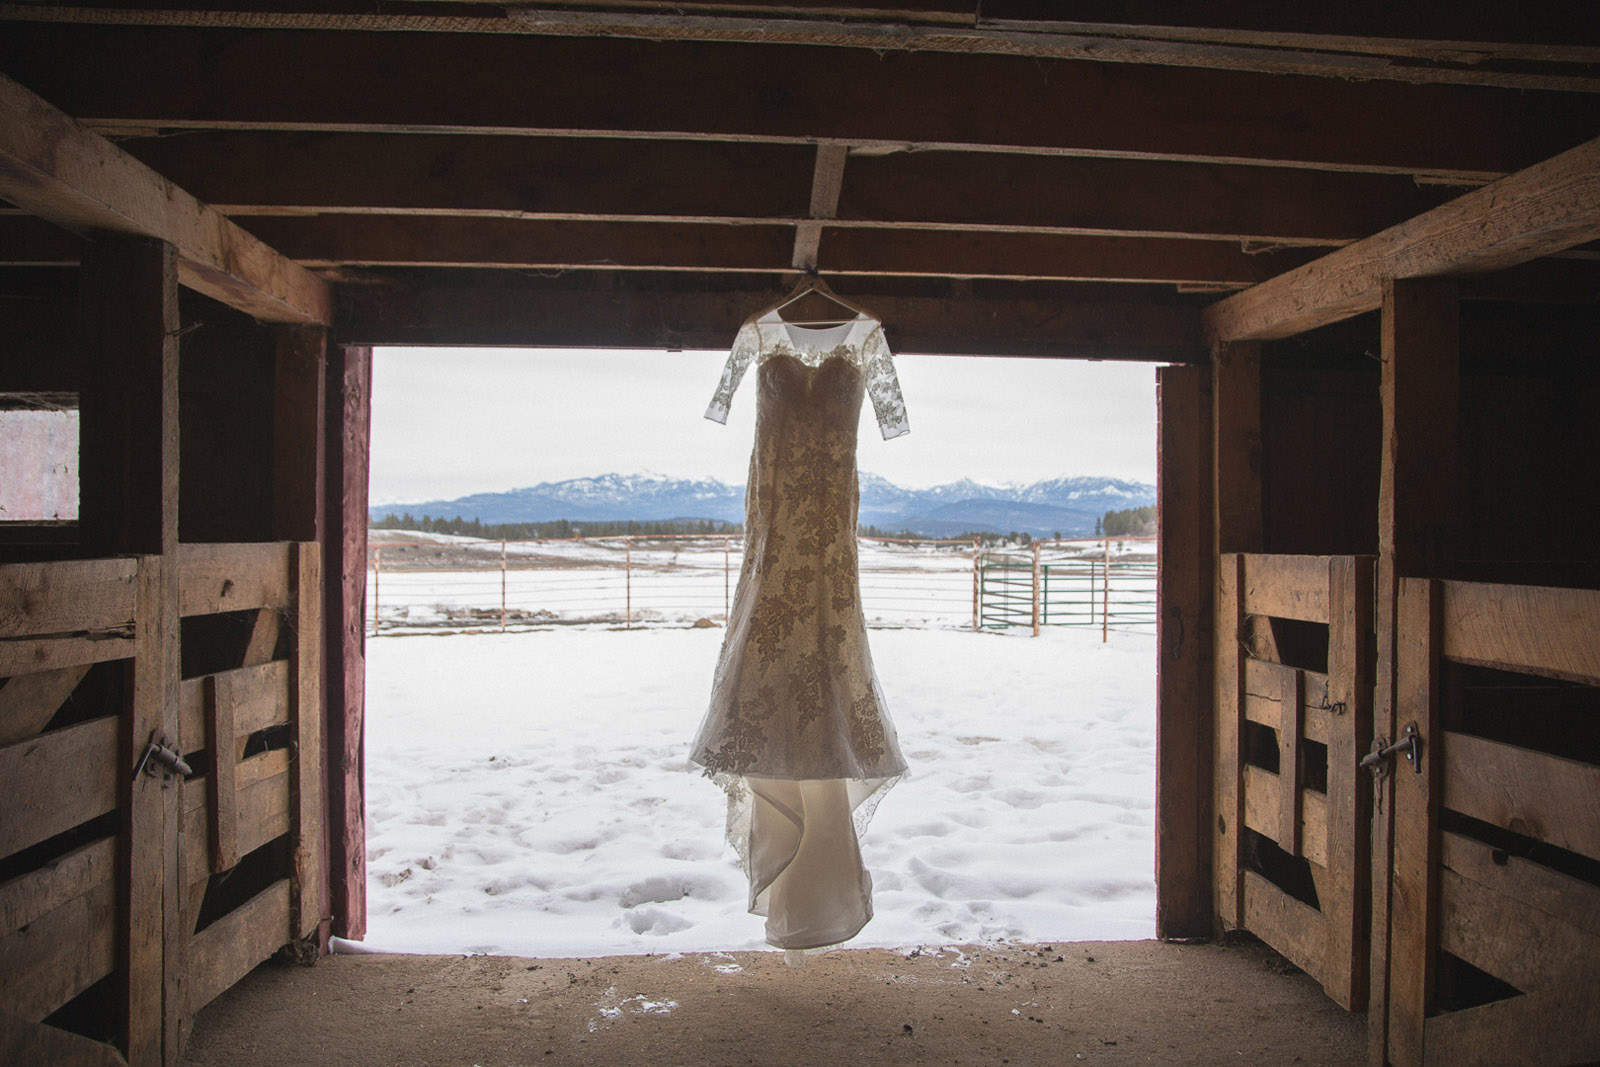 027-wedding-dress-in-red-barn-hanging-for-style-in-pagosa-springs-colorado-for-mirabal-photography